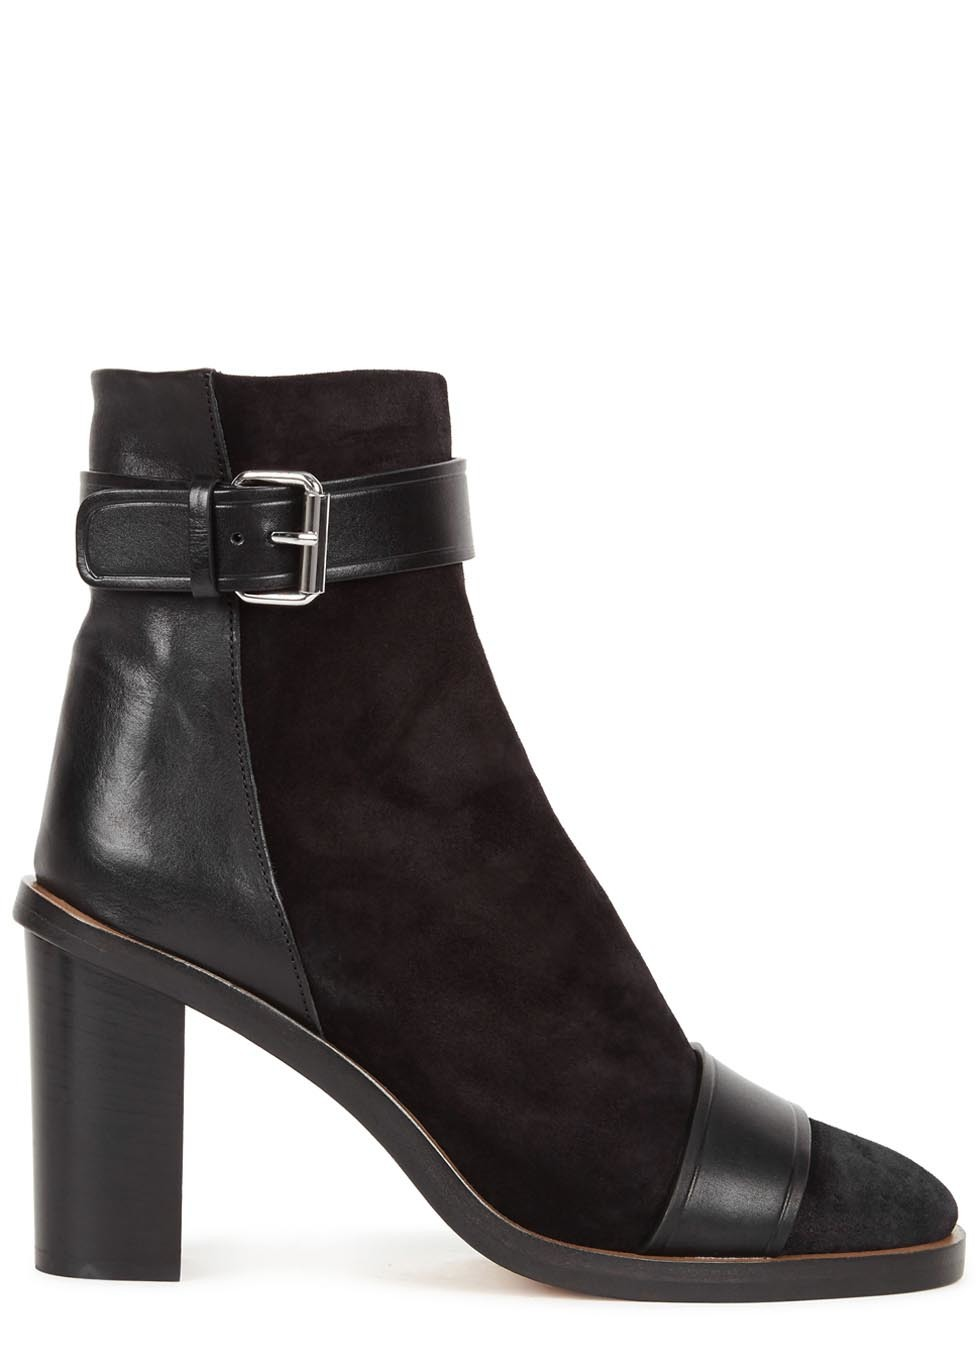 Gussie Black Suede And Leather Ankle Boots - predominant colour: black; occasions: casual, creative work; material: suede; heel height: high; heel: block; toe: round toe; boot length: ankle boot; style: standard; finish: plain; pattern: plain; season: a/w 2016